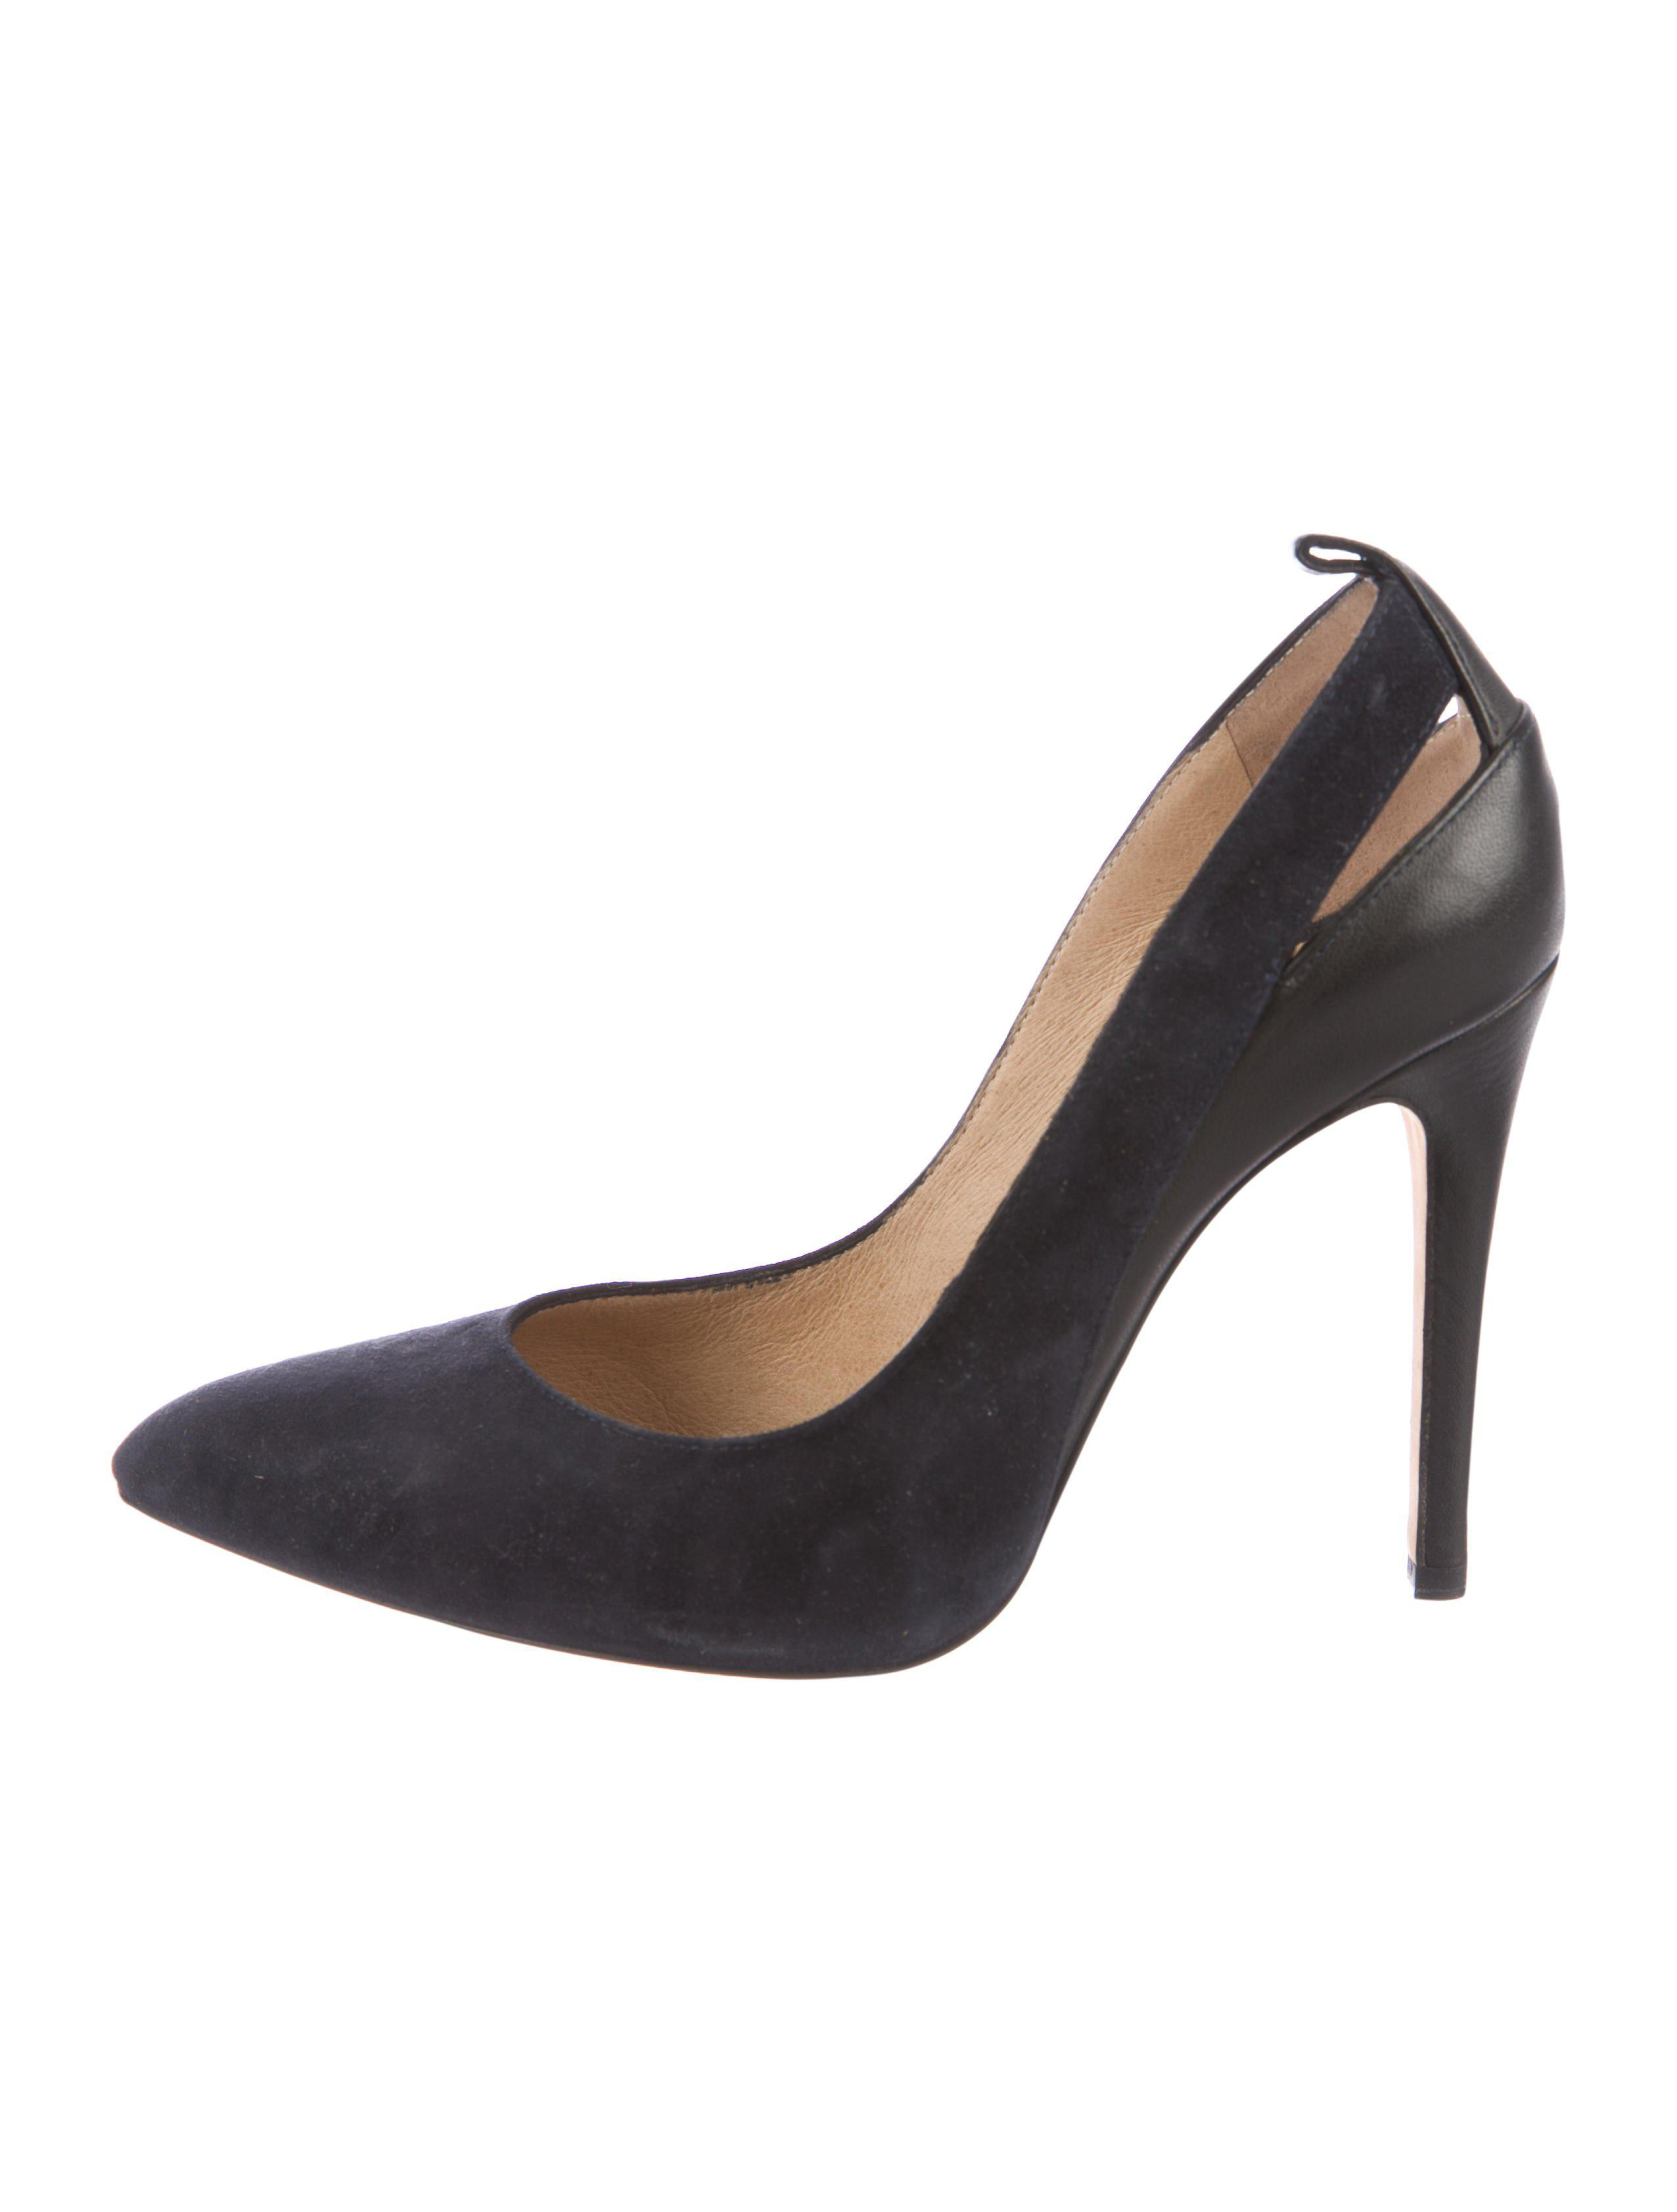 Iro Kana Suede Pumps browse sale online best prices online free shipping high quality clearance best prices BkluPP1z7